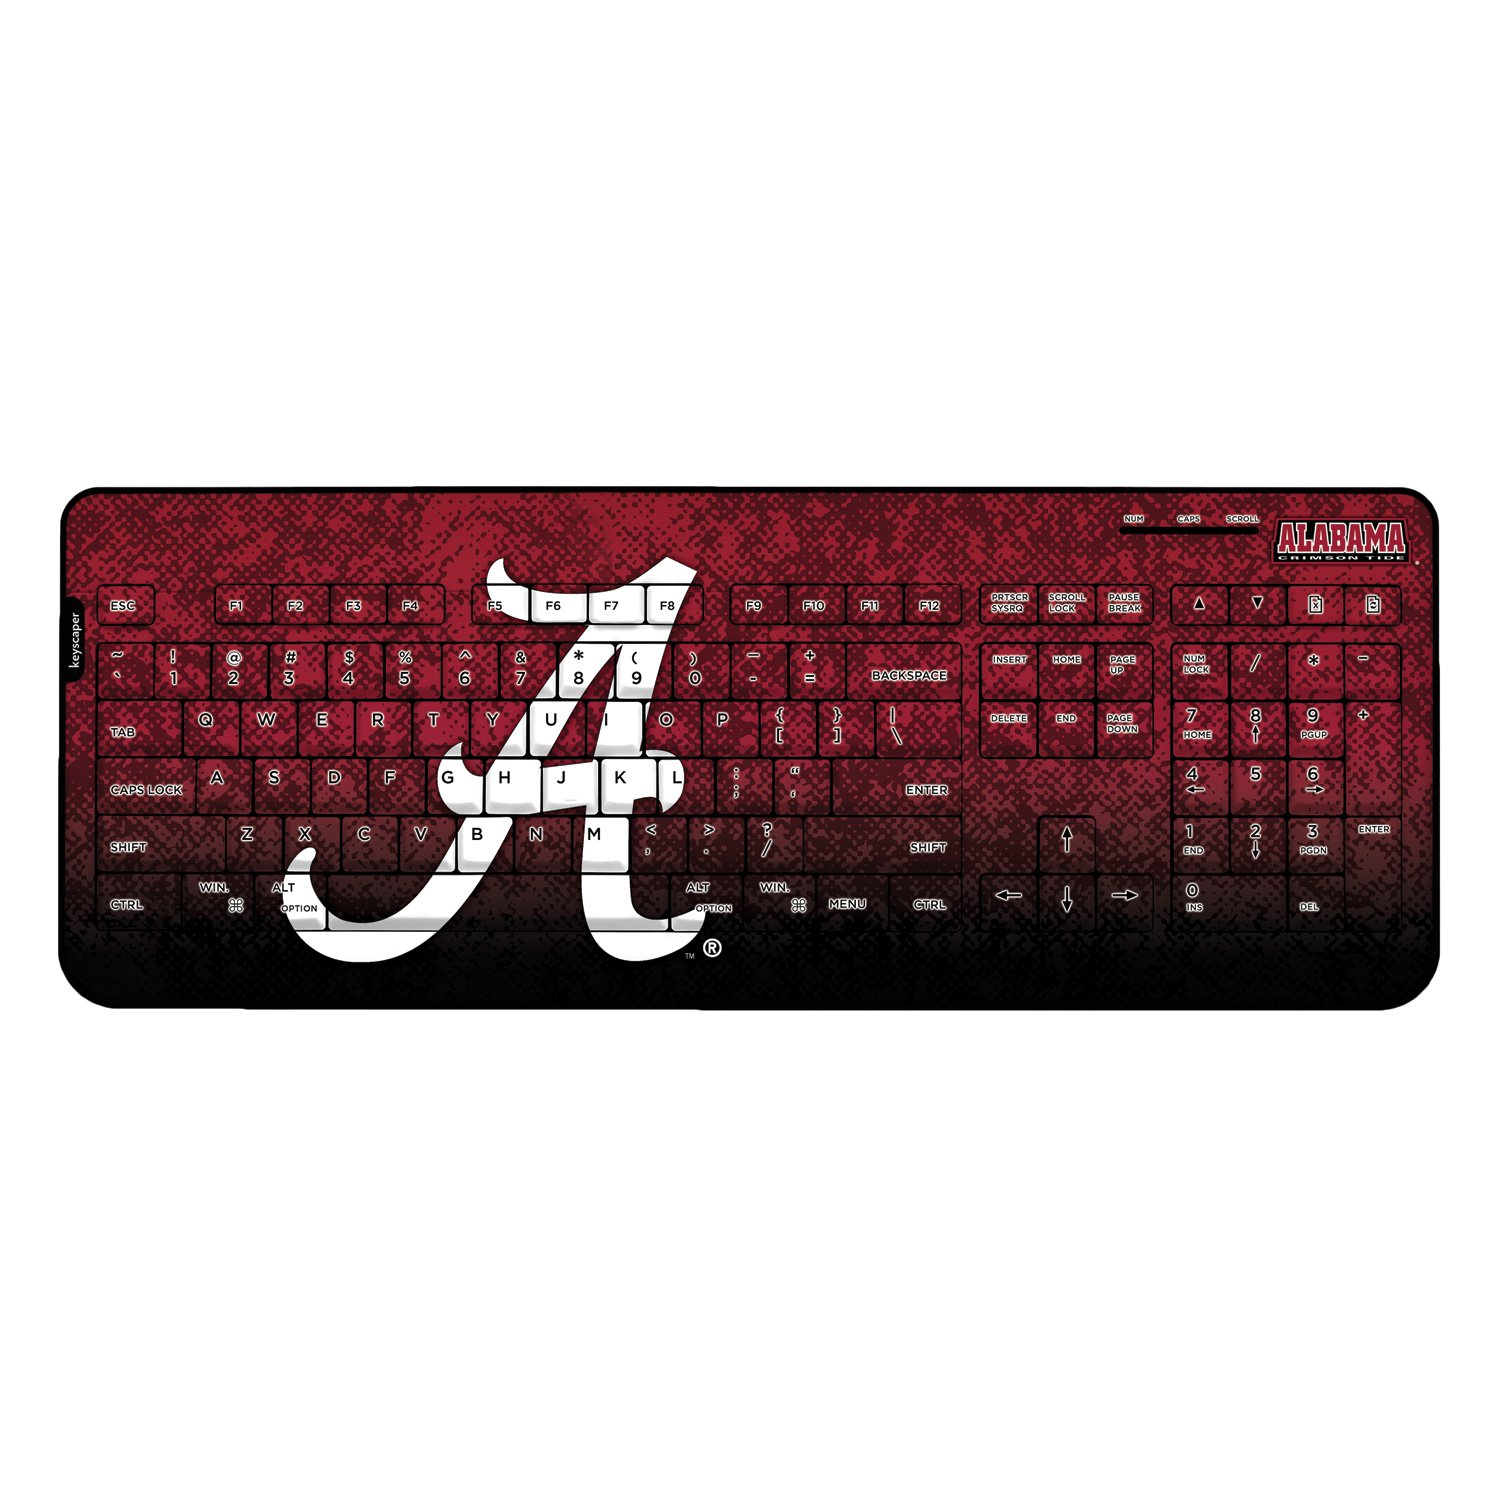 Alabama Crimson Tide Keyscaper Wired Keyboard officially licensed by the University of Alabama Full Size Low Profile Direct Print Plug & Play by keyscaper®